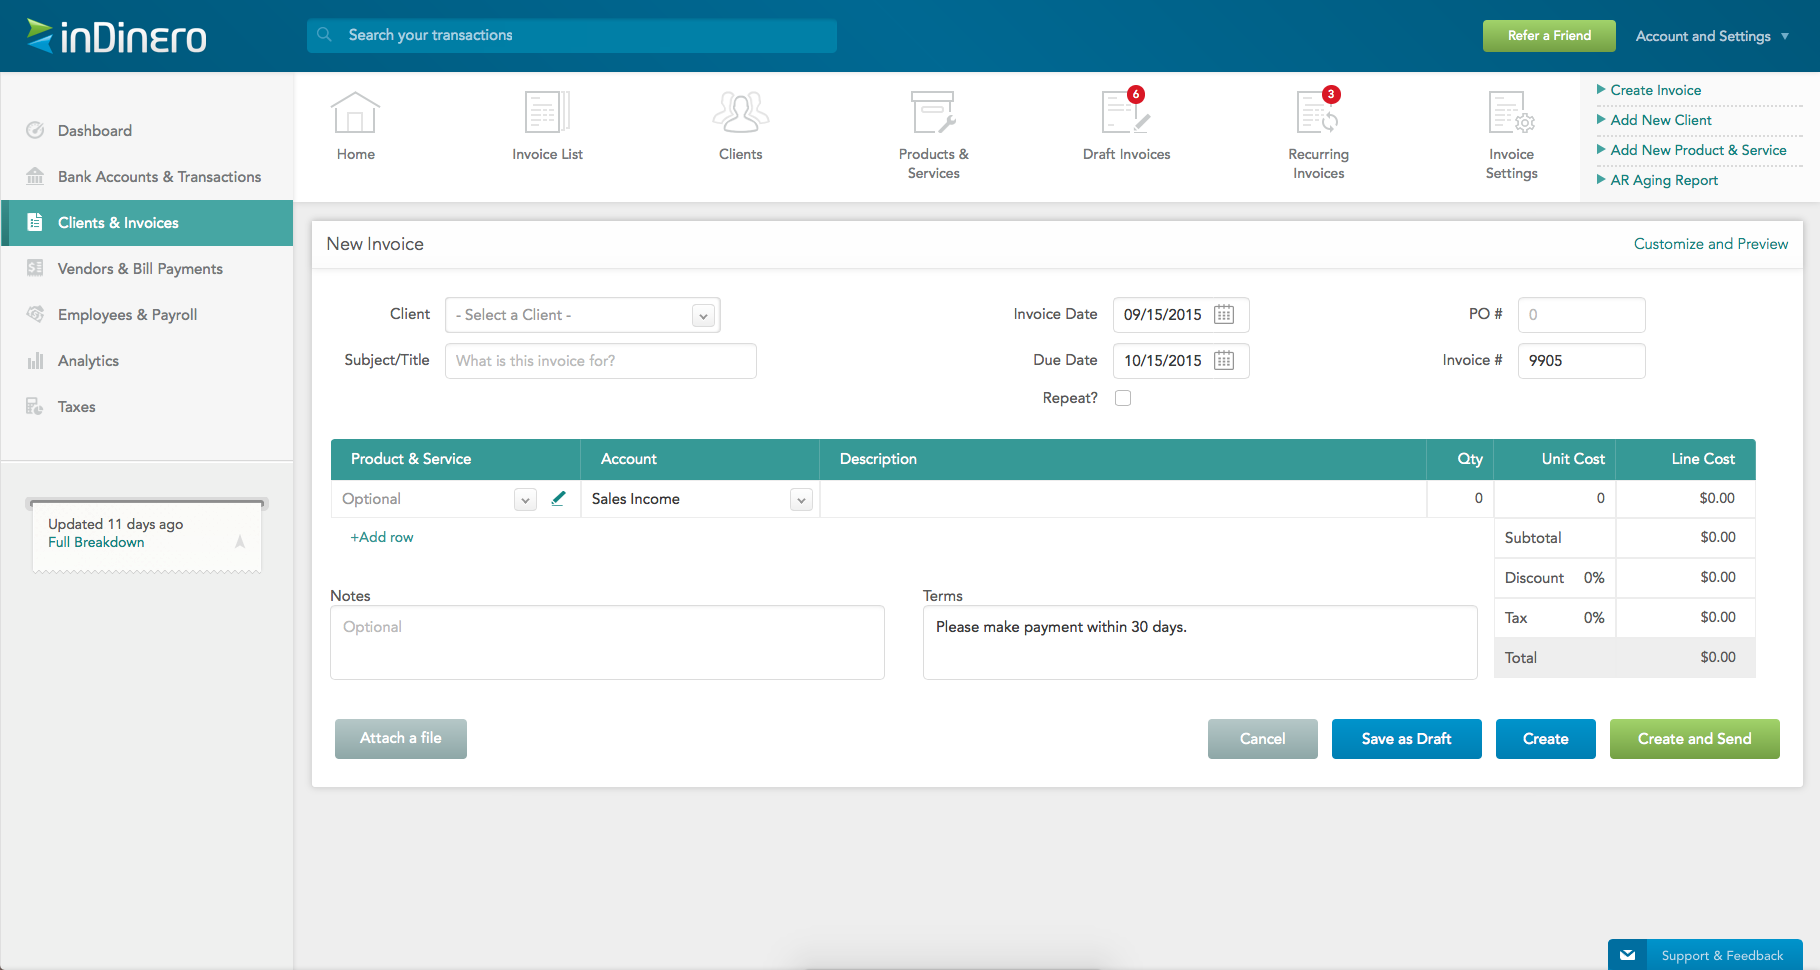 Here, you can create a new invoice and customize it to your brand's specifications using inDinero